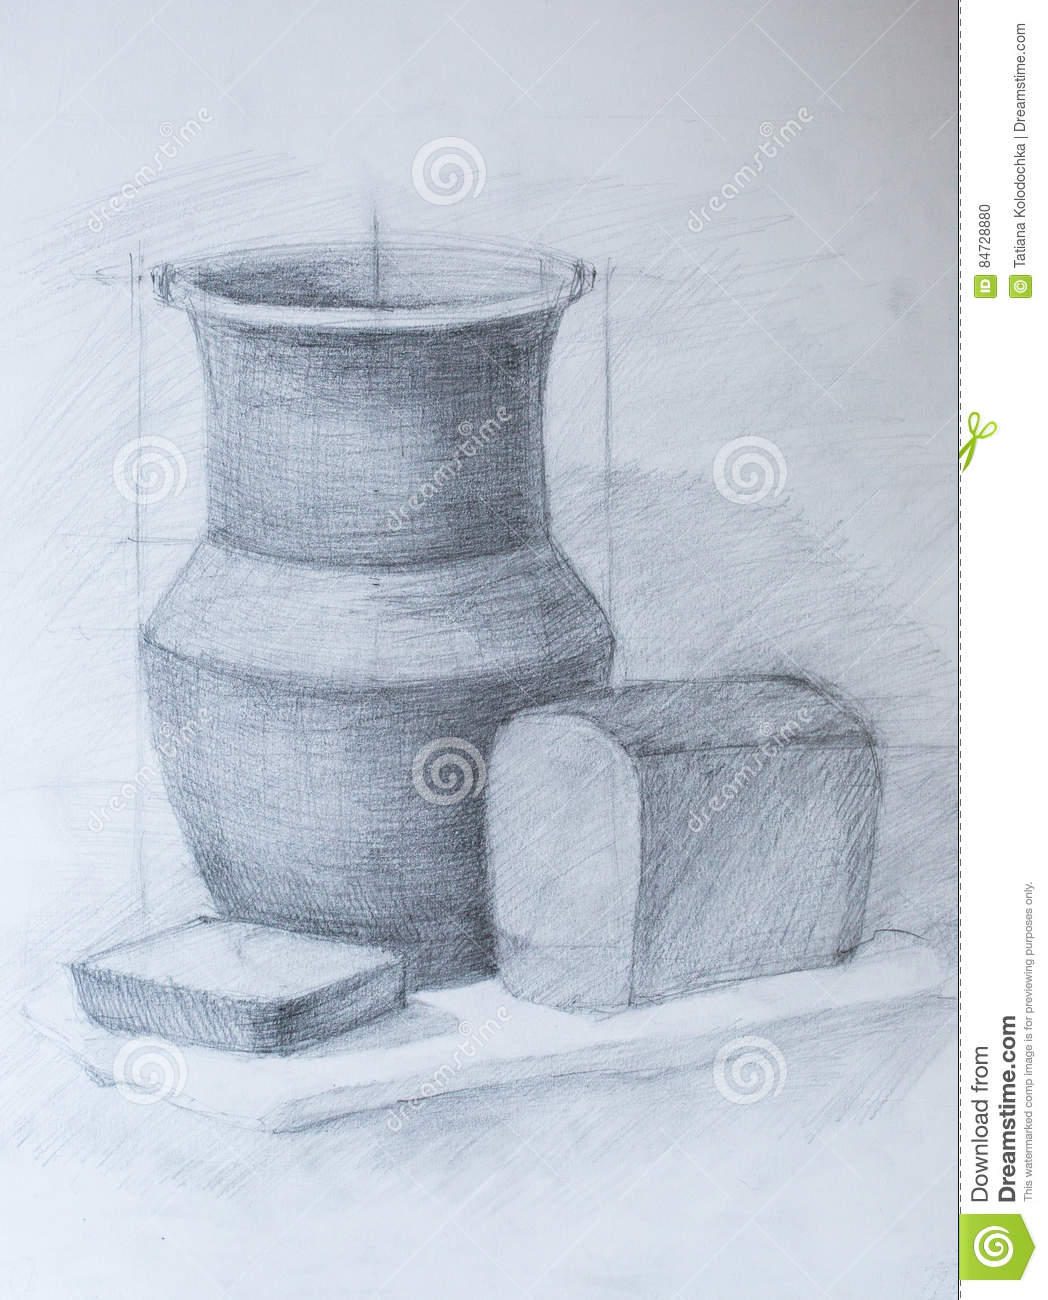 Still life pencil drawing stock illustration illustration of